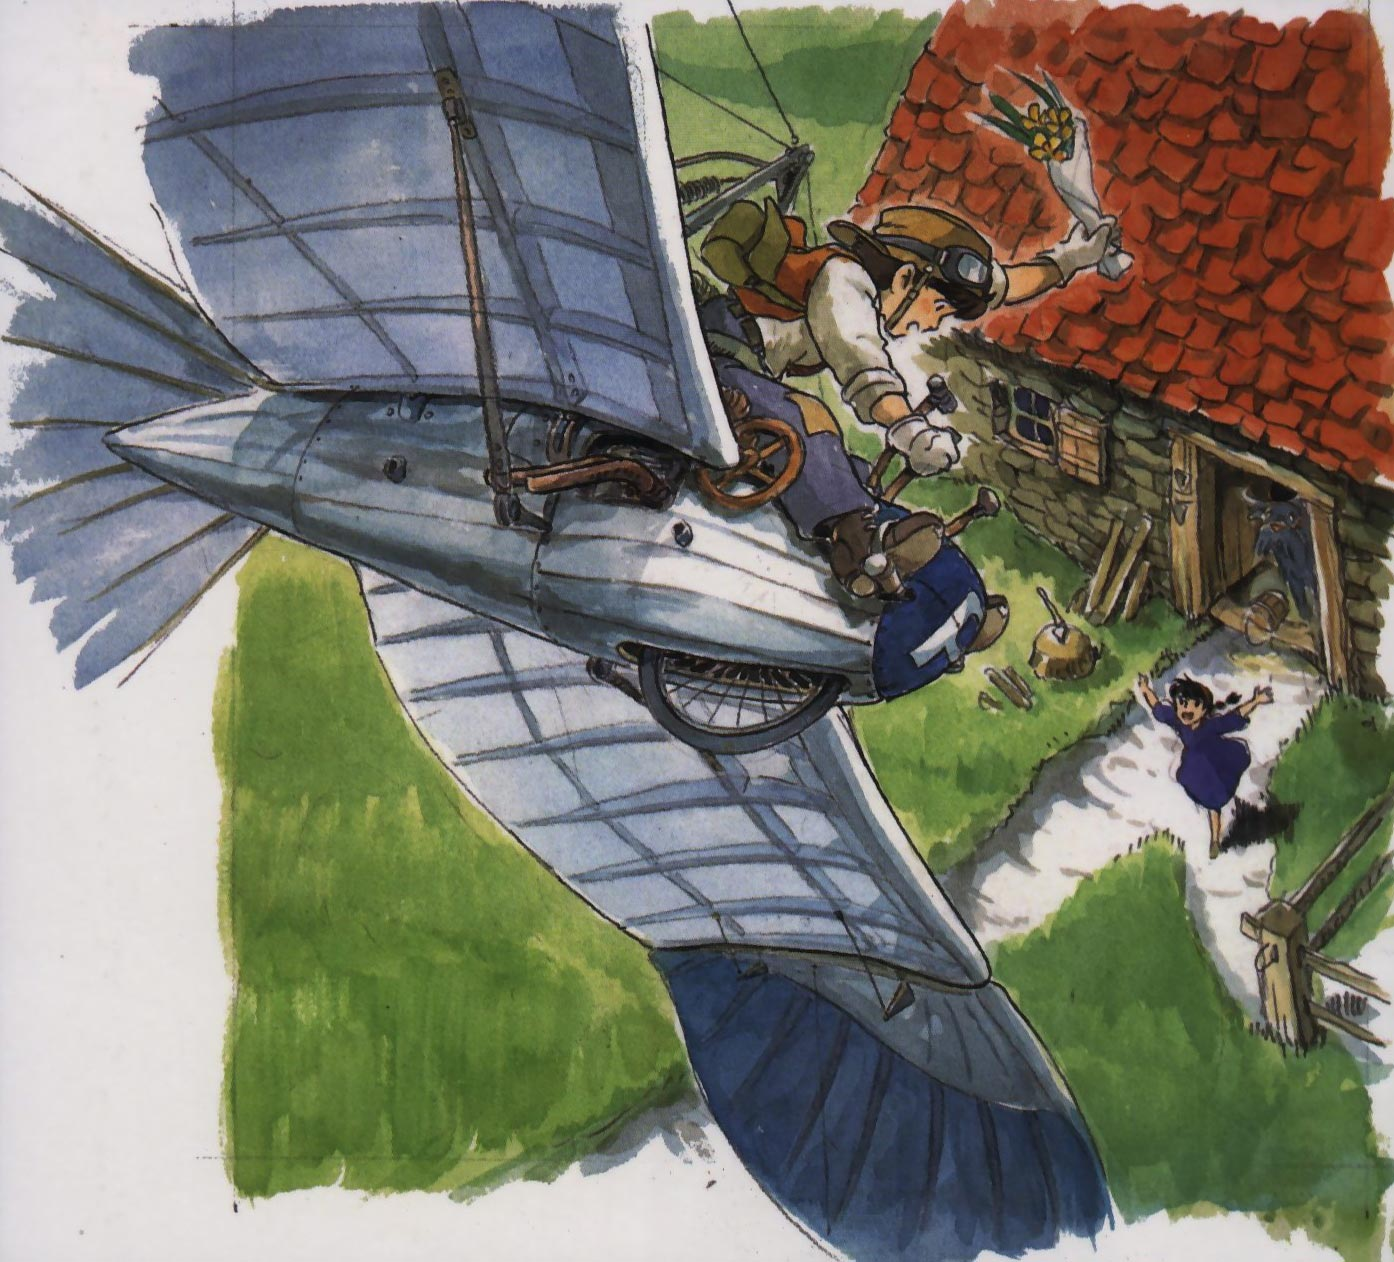 laputa_castle_in_the_sky_concept_art_character_26